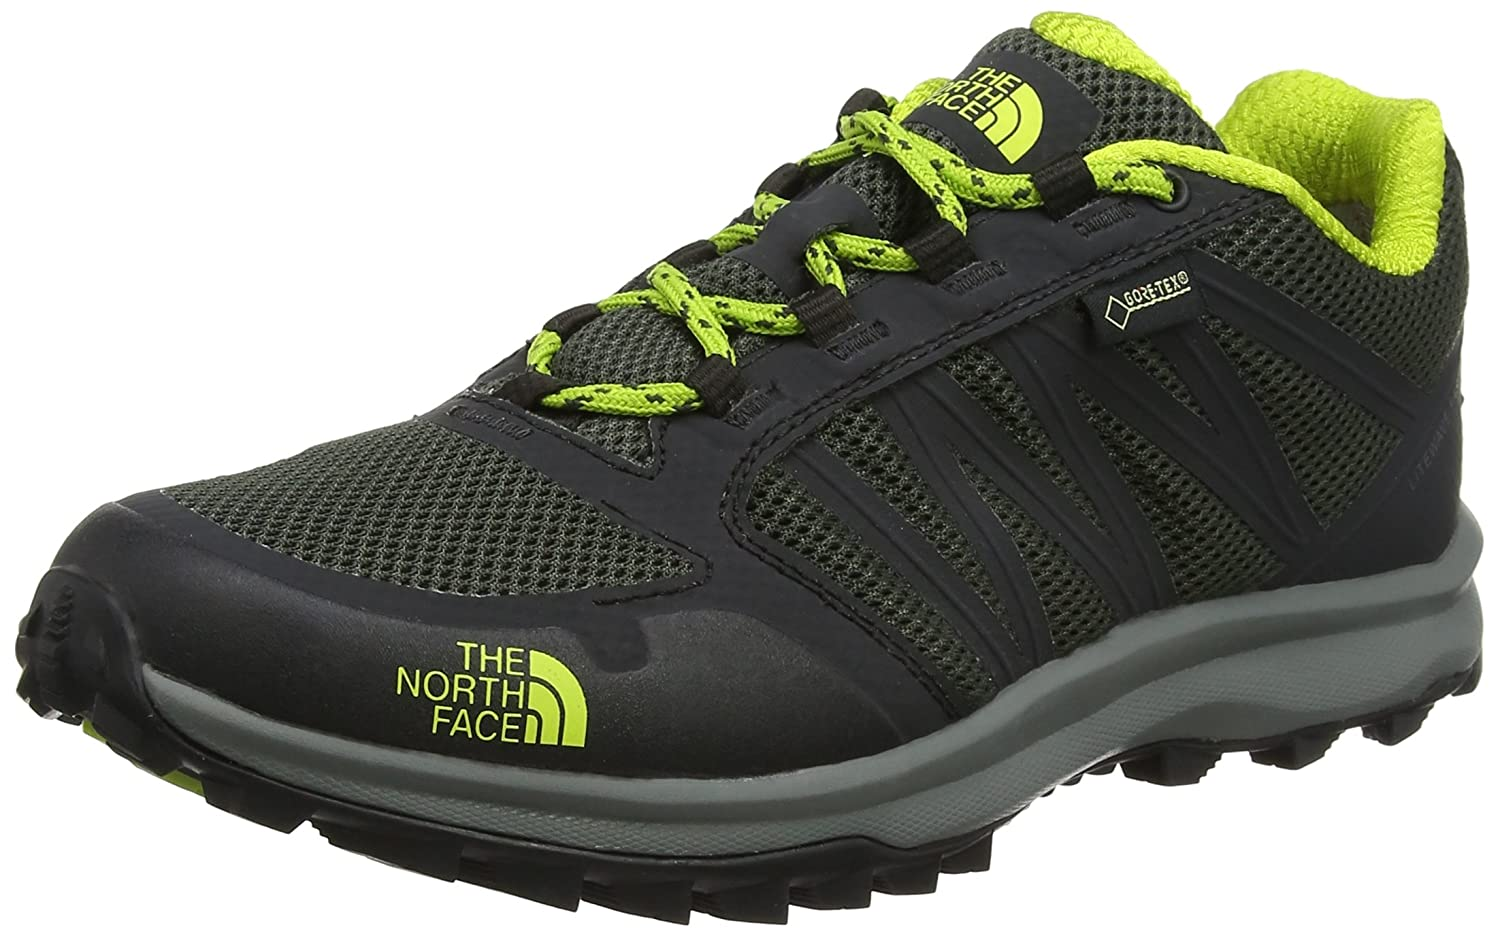 The North Face Litewave Fastpack Gore-Tex, Stivali da Escursionismo Uomo